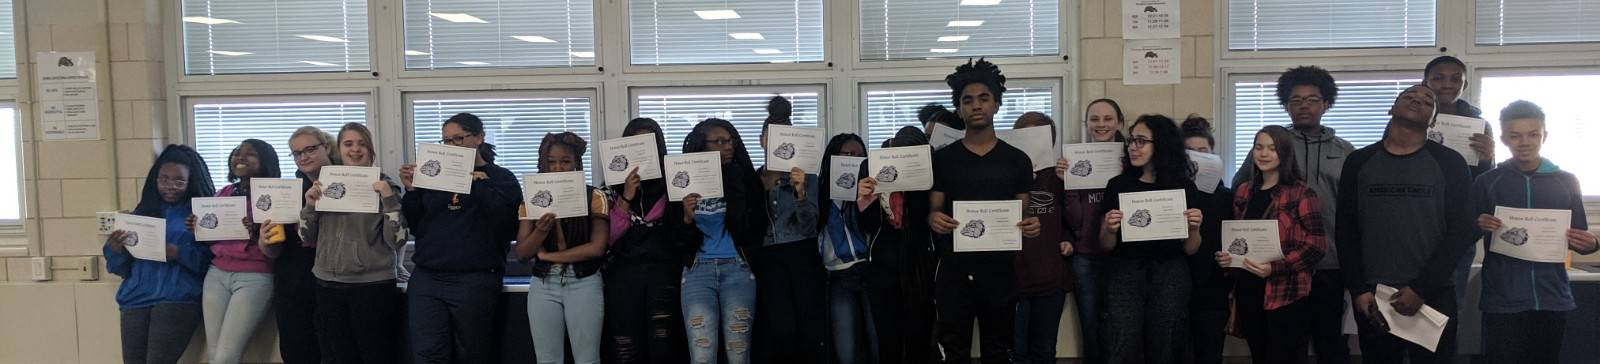 Students with Award certificates for positive behavior